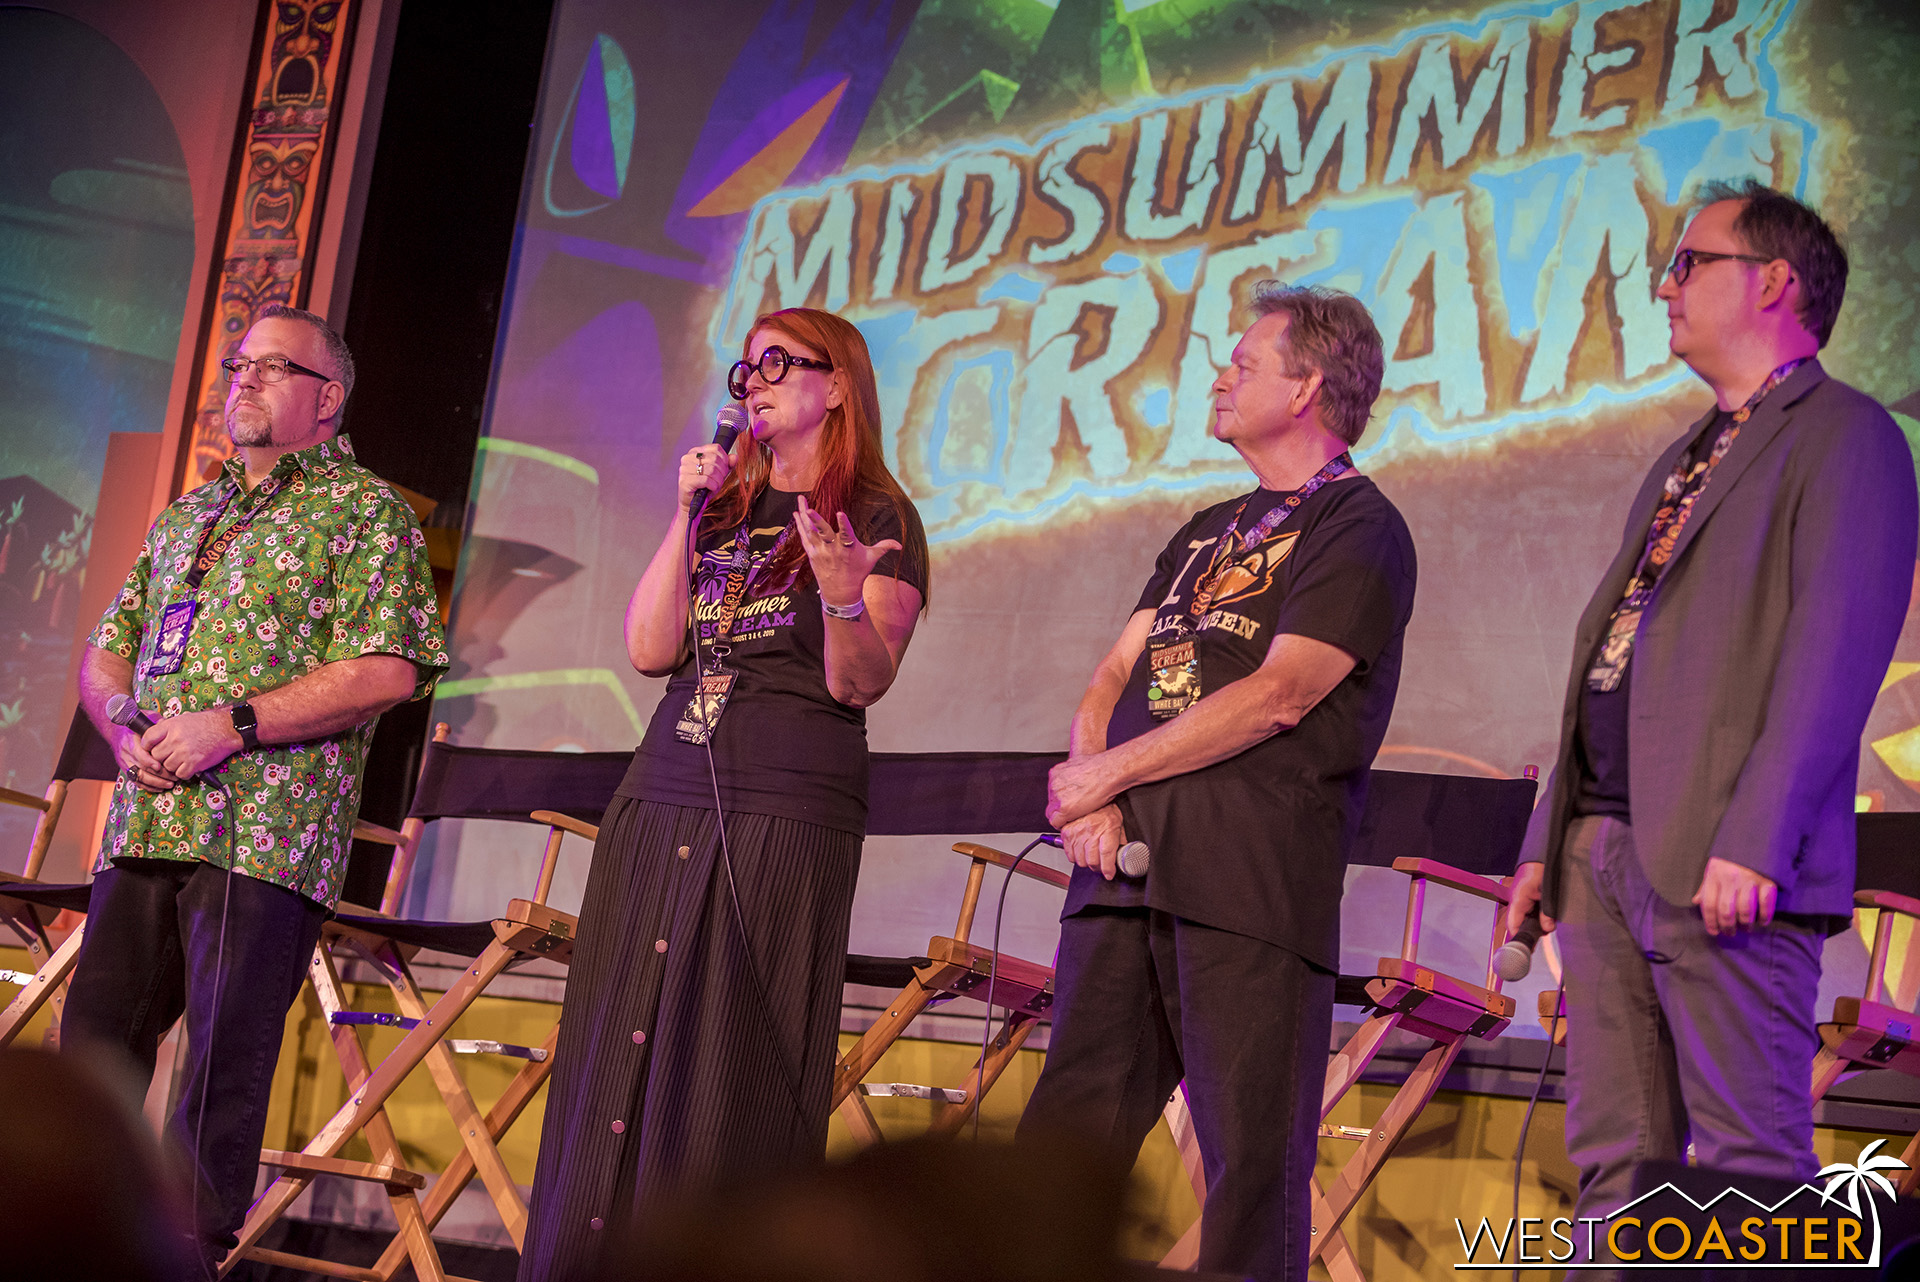 Left to right, Creative Director, Rick West; Supervising Producer, Claire Dunlap; Executive Producer, Gary Baker; and Executive Director, David Markland.